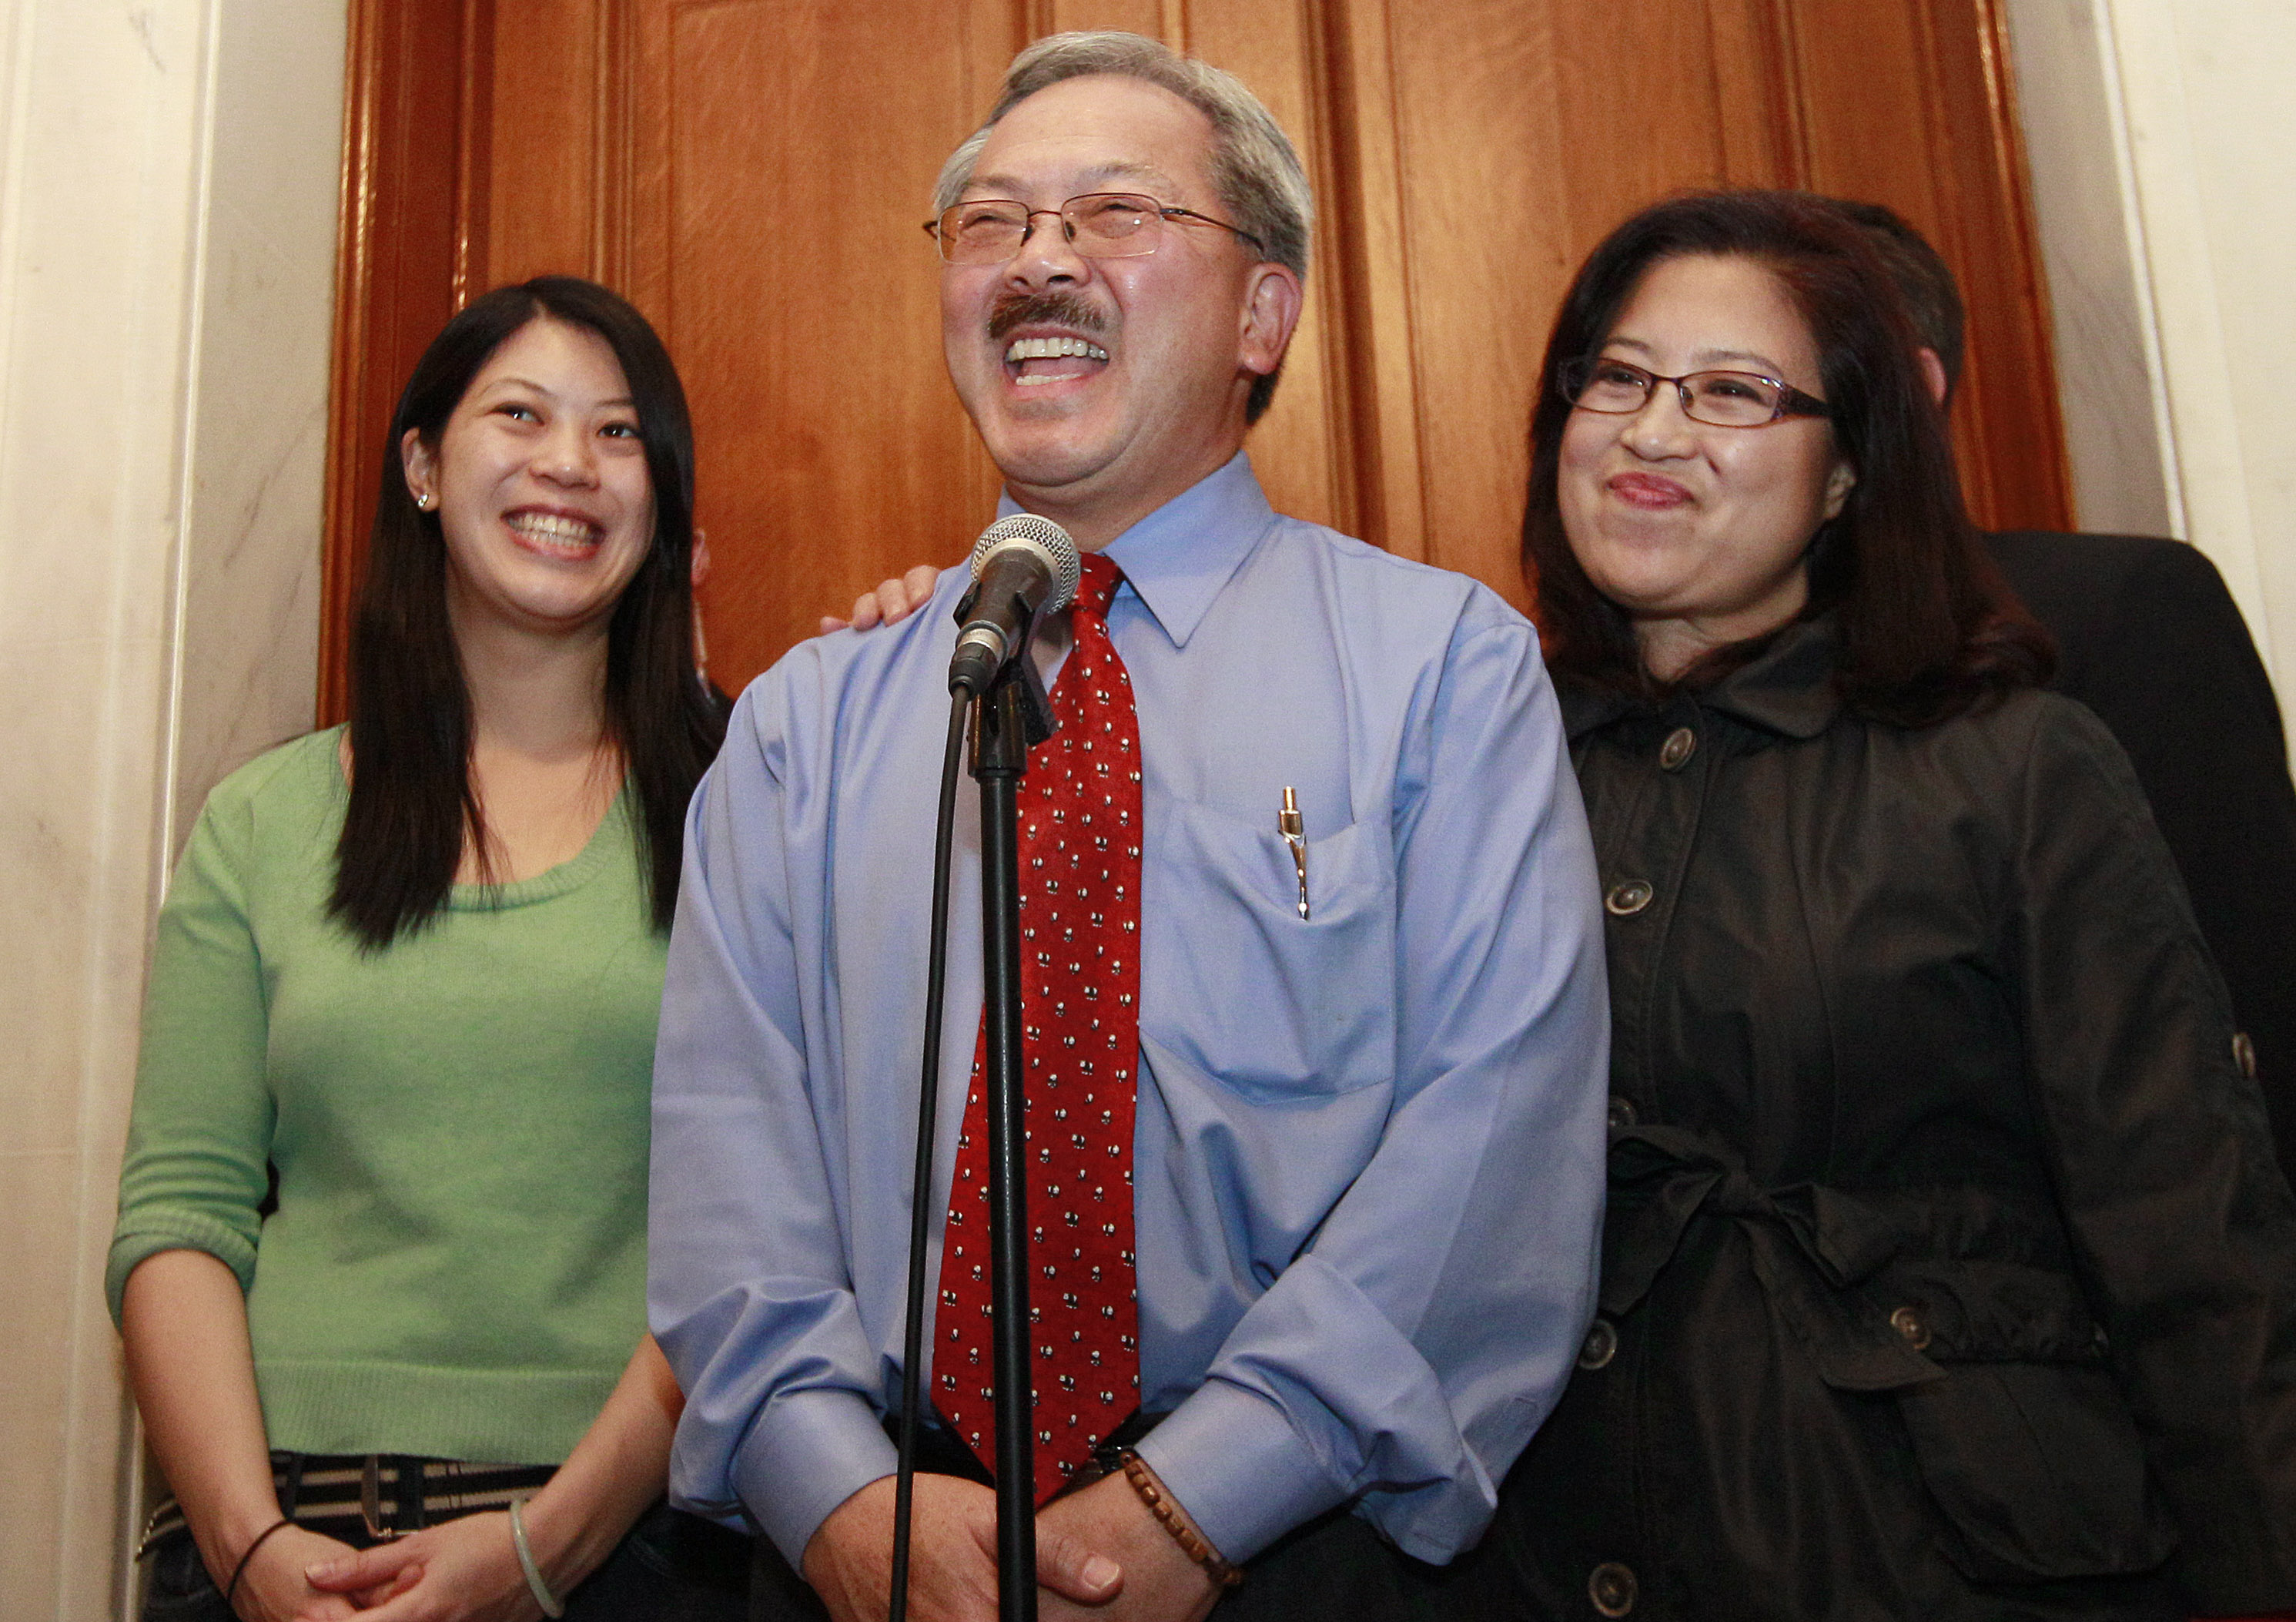 Mayor Ed Lee, center, speaks at a news conference next to his wife Anita, right, and his daughter Brianna outside of his office at City Hall, Wednesday, Nov. 9, 2011.